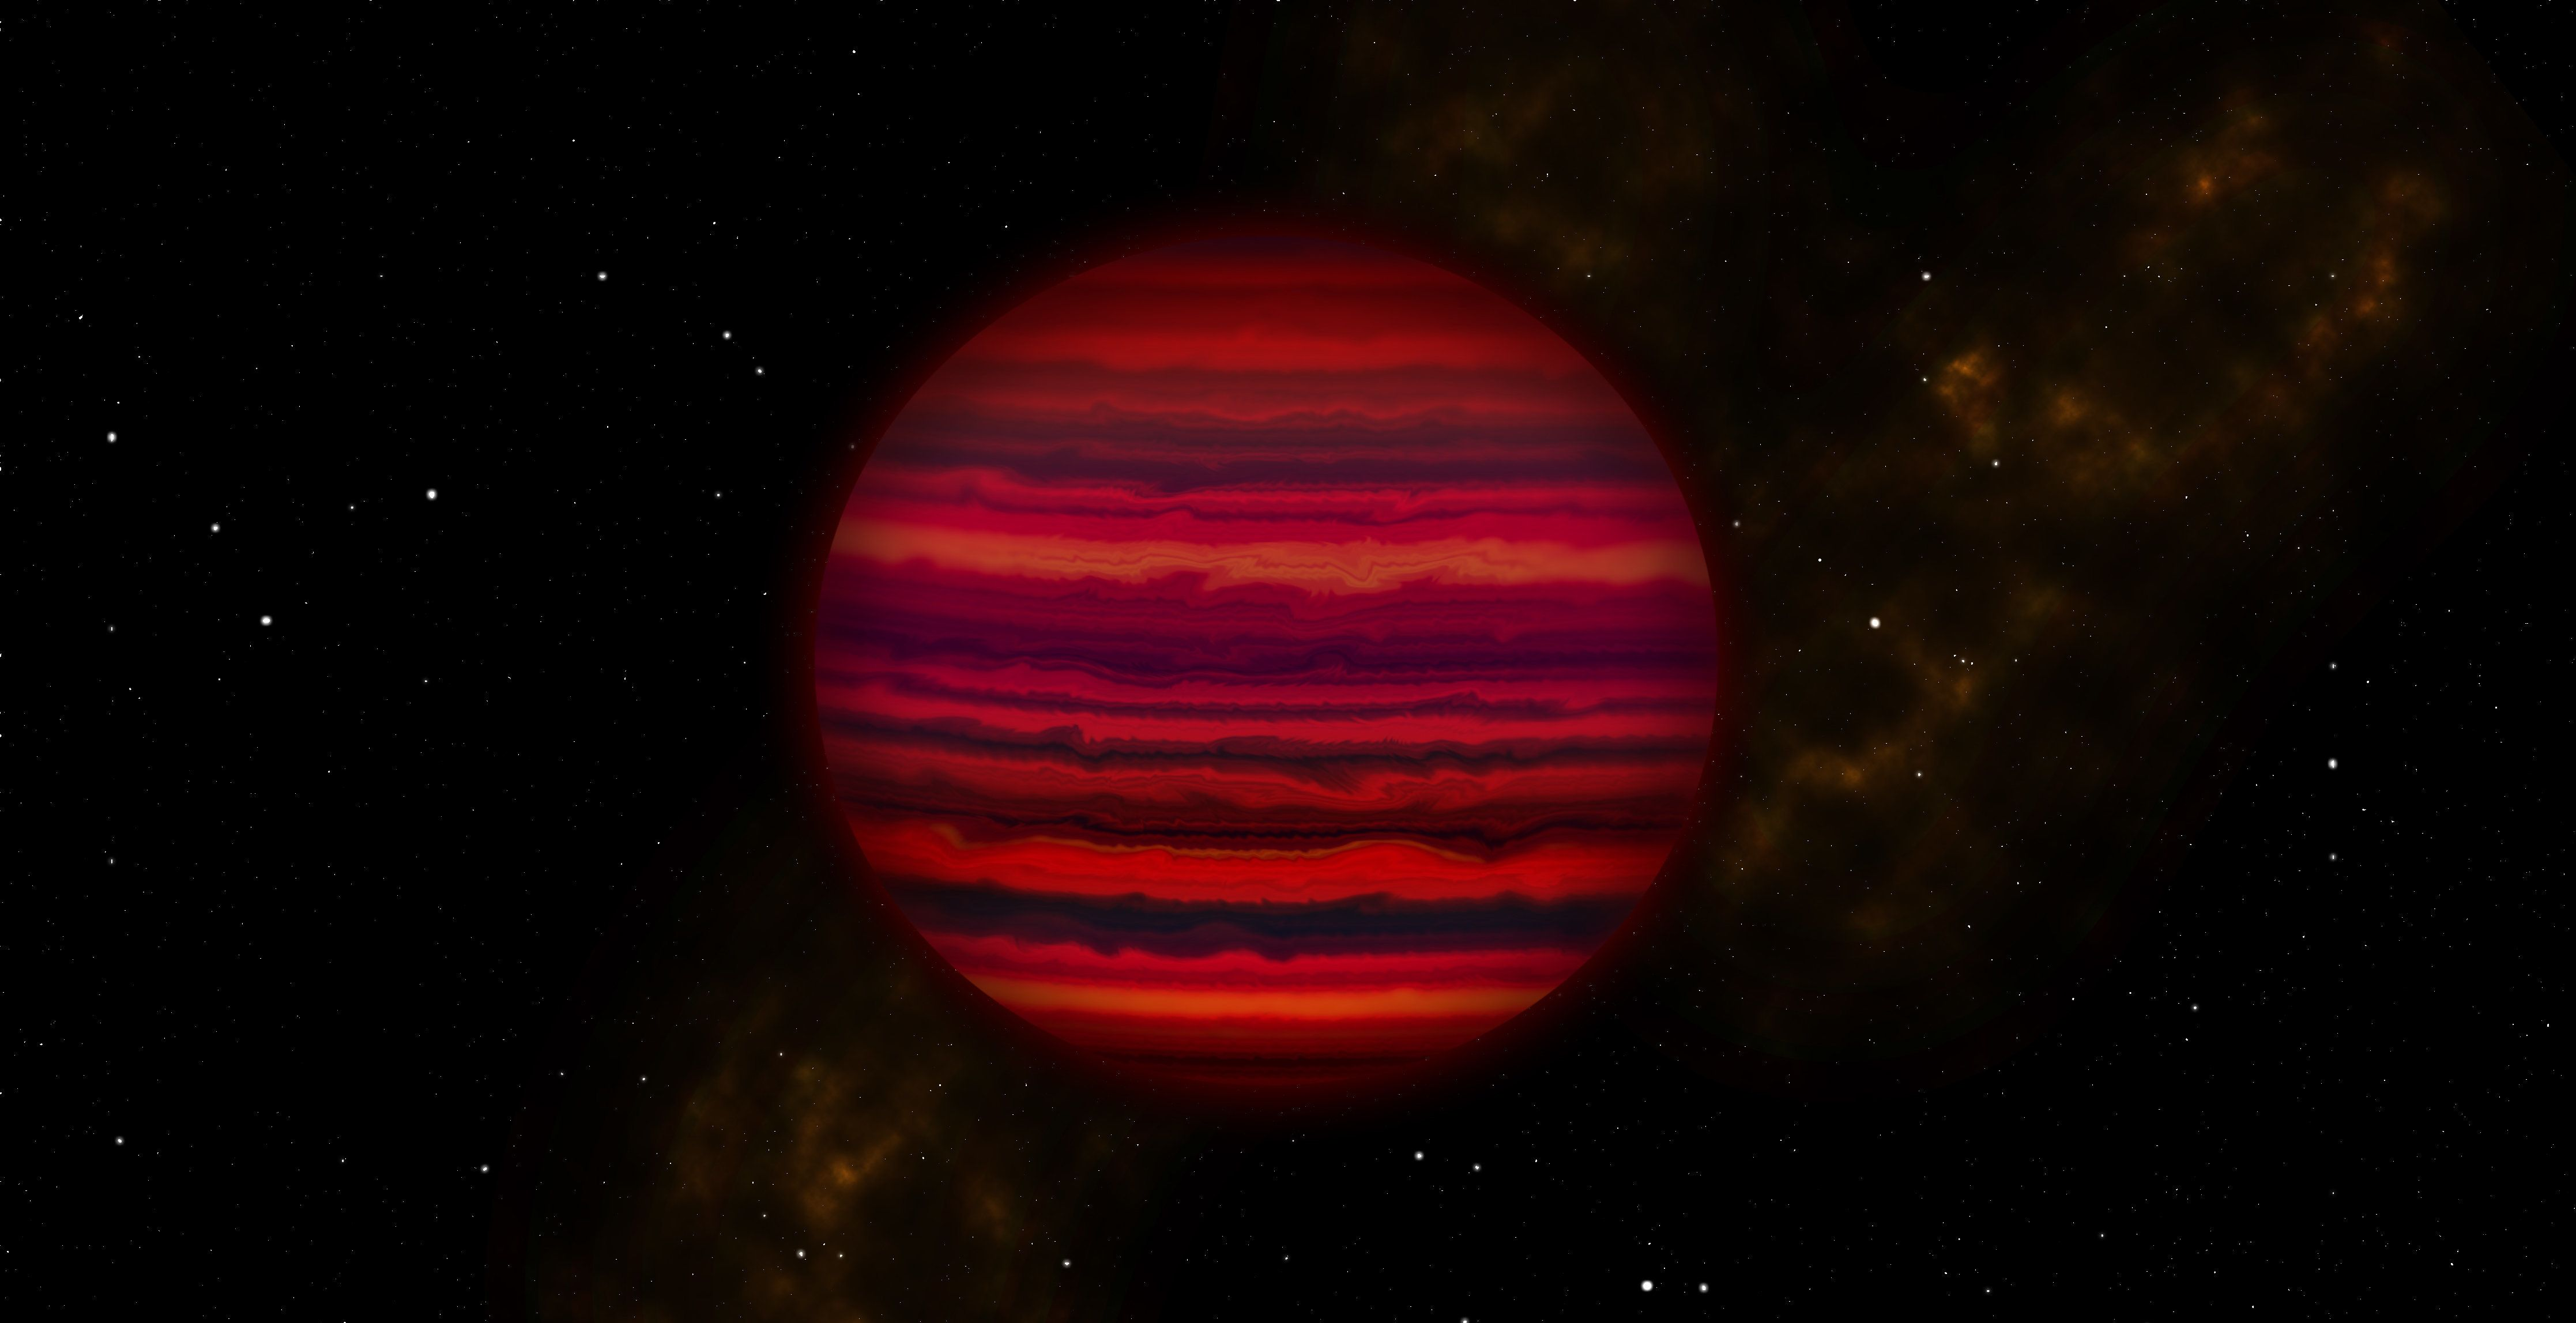 WISE 0855 was discovered in 2014 and is located 7.2 lightyears from Earth.